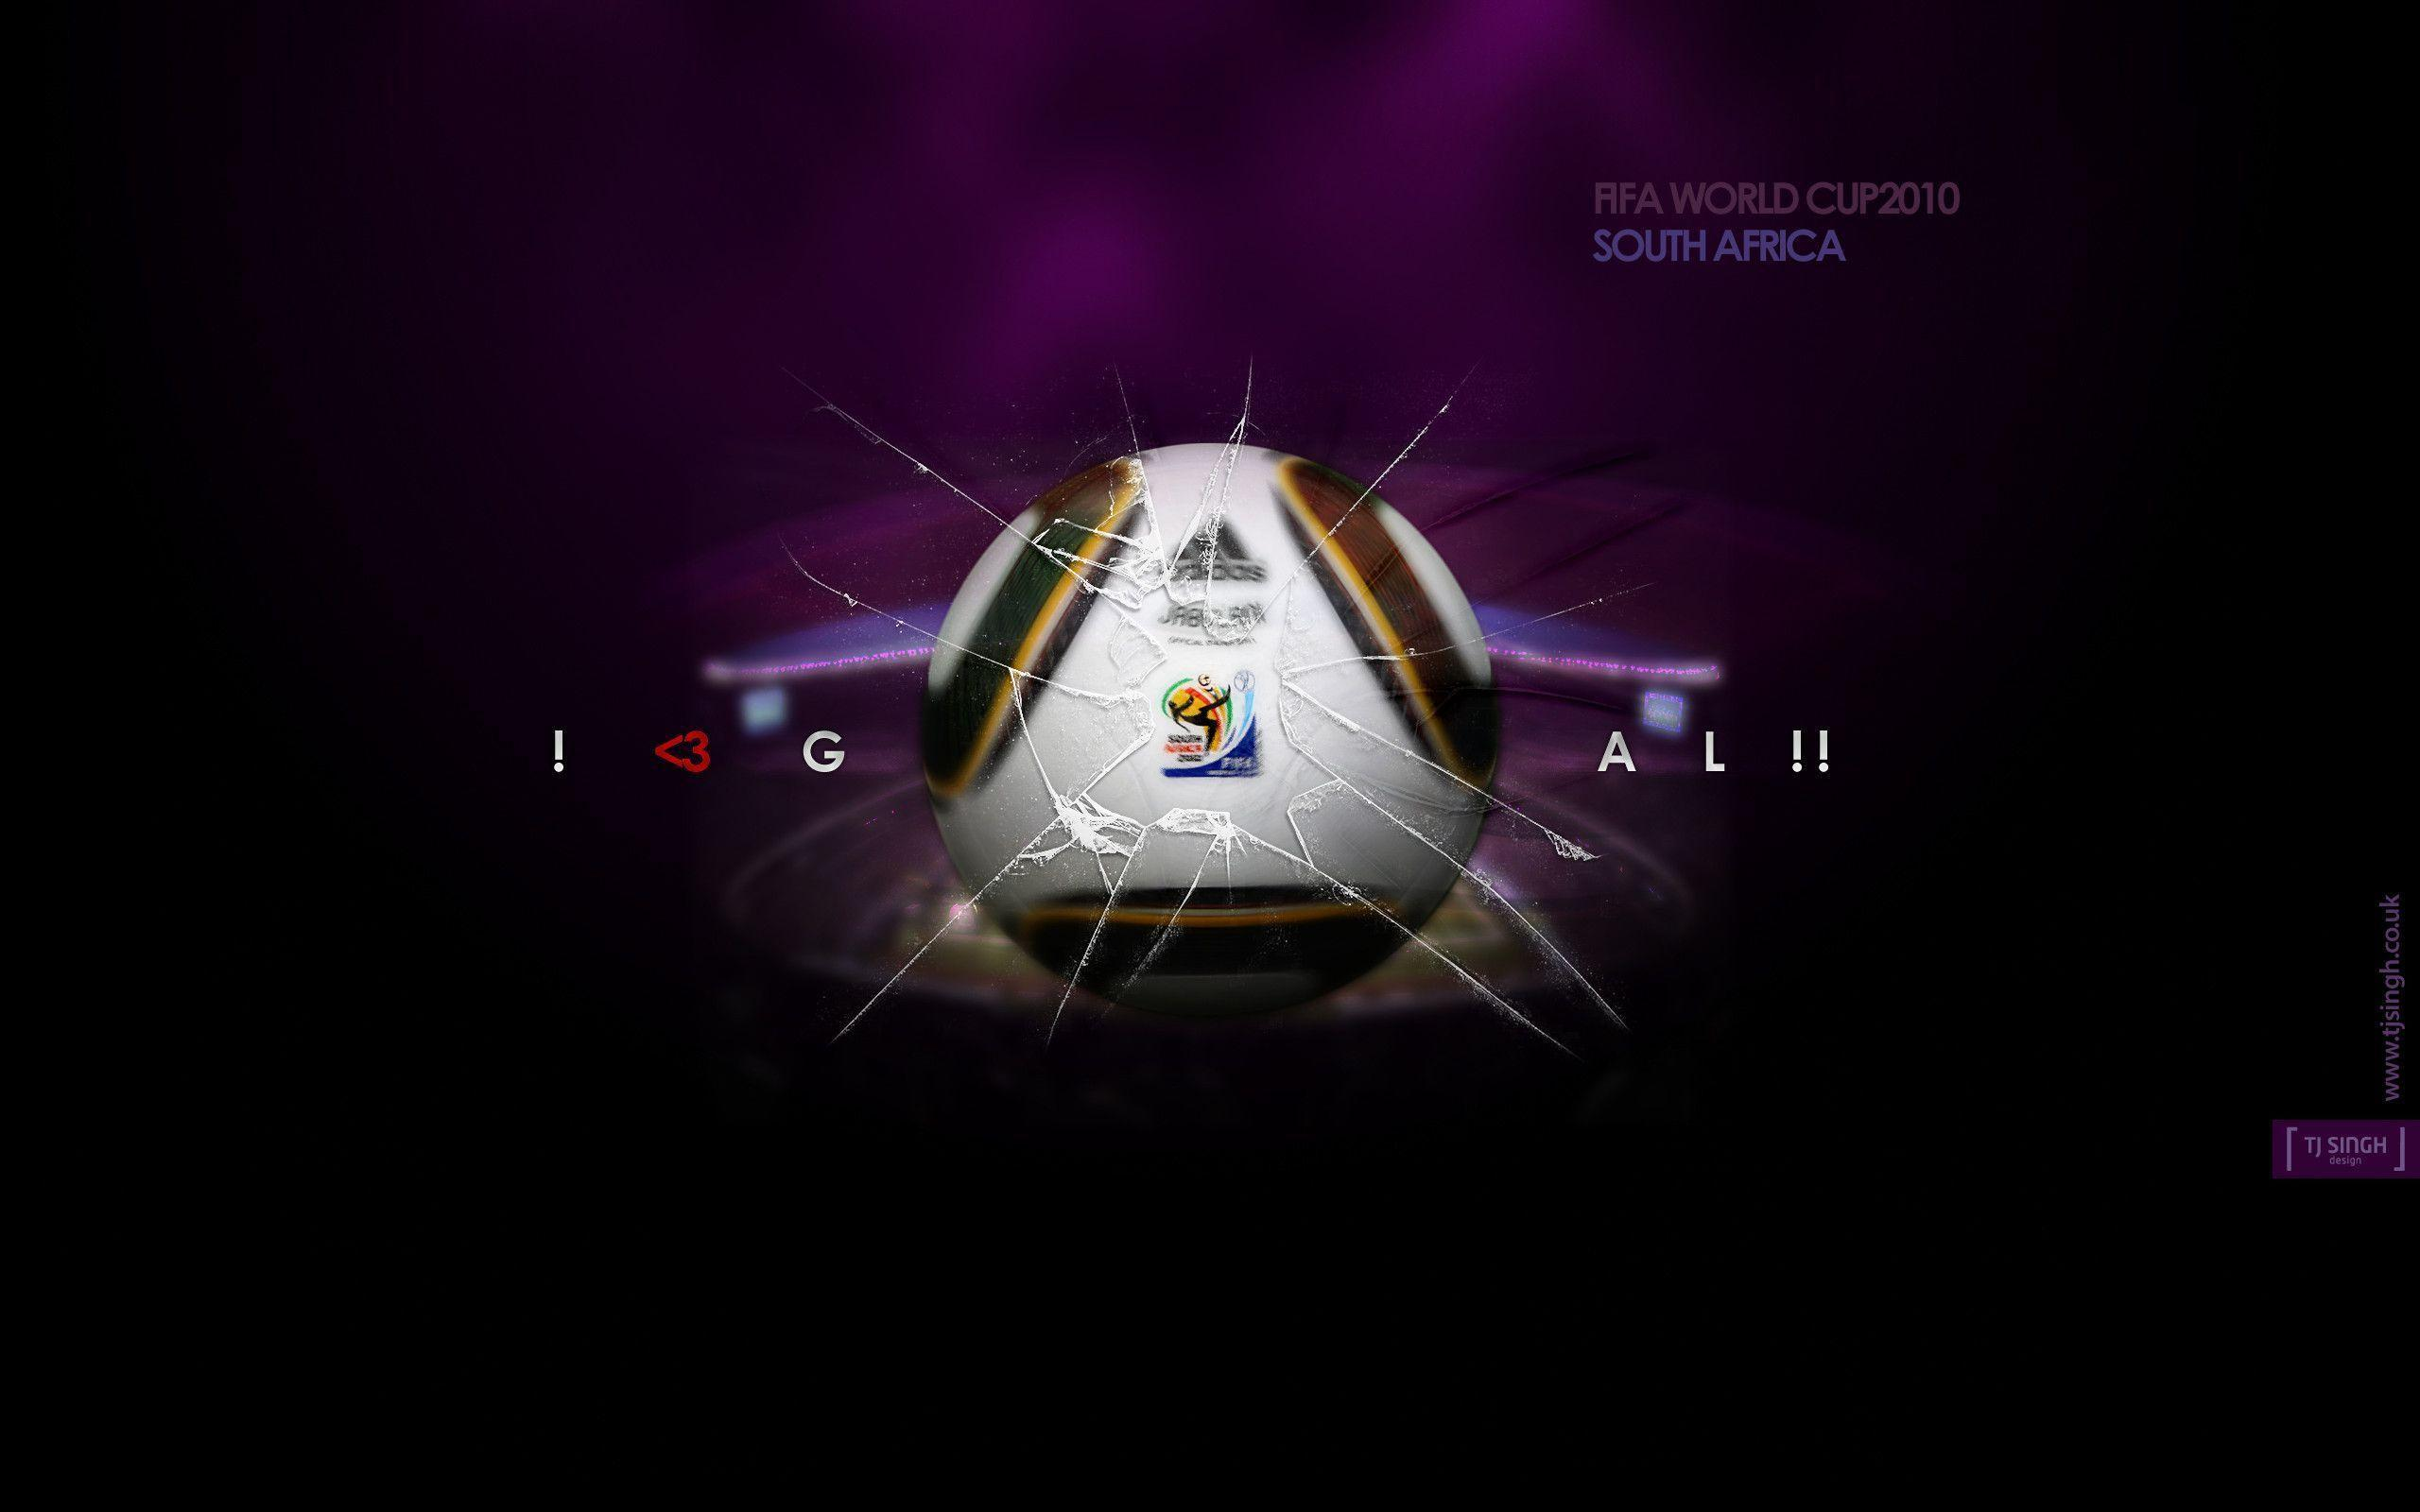 Fifa World Cup 2010 ball wallpapers | Fifa World Cup 2010 ball ...